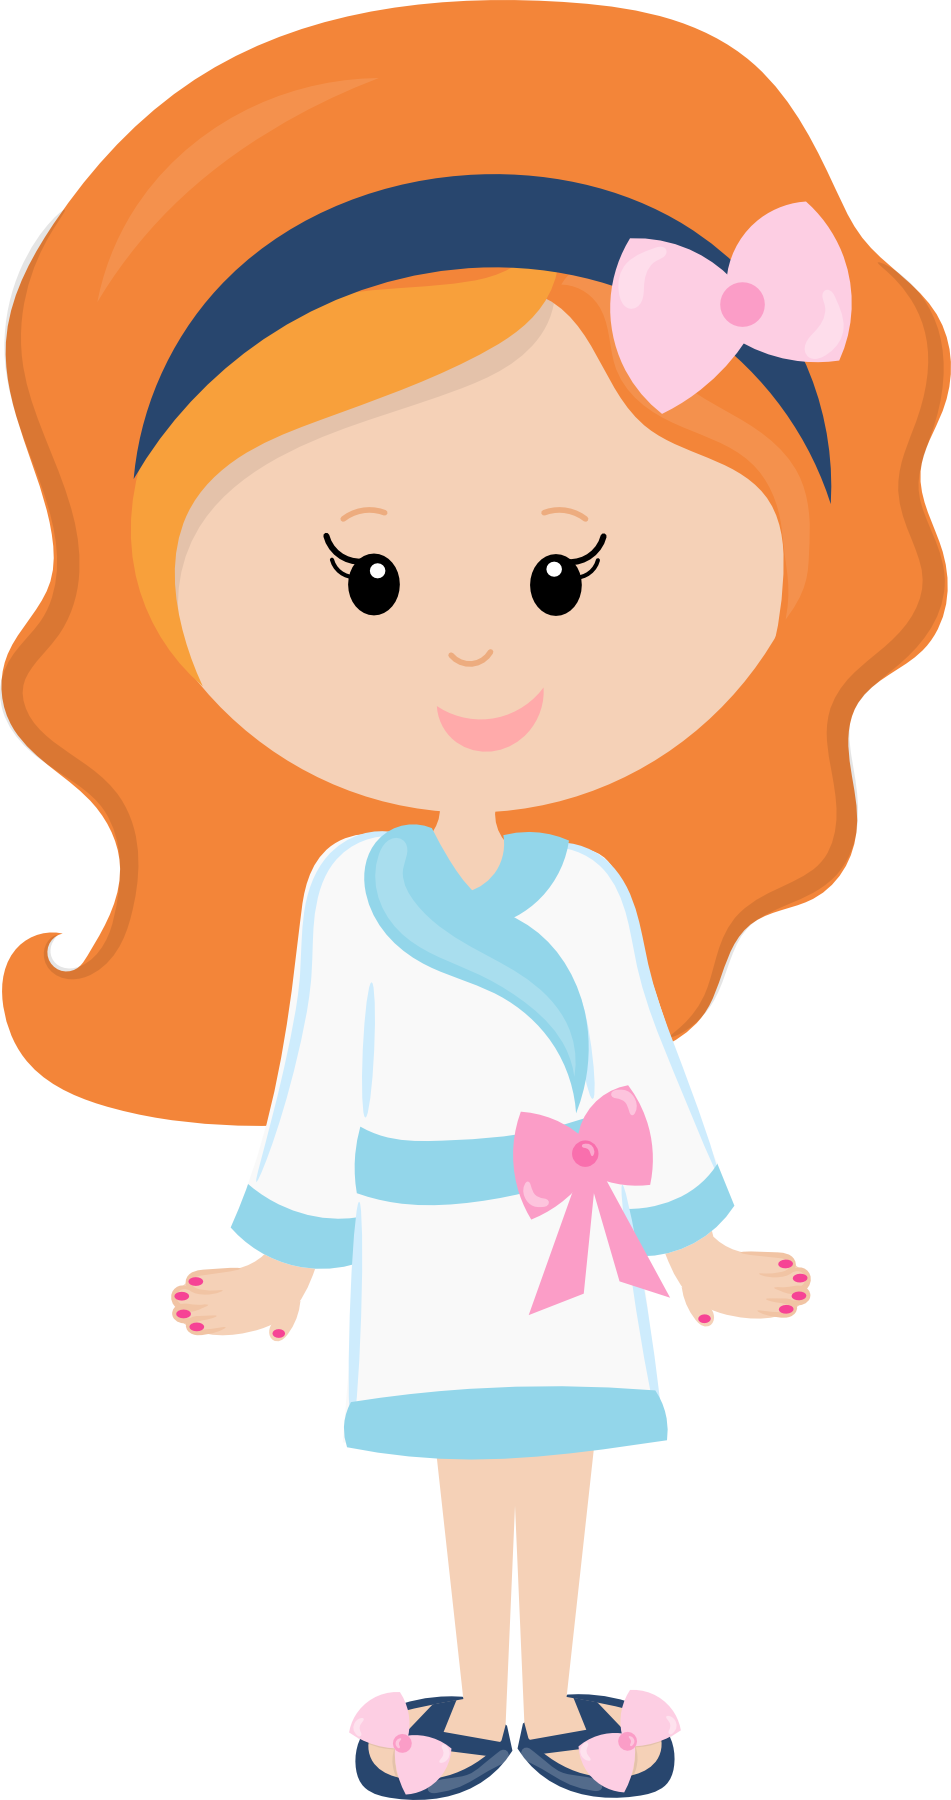 Pajamas clipart pj day. Pajama party sewing camp